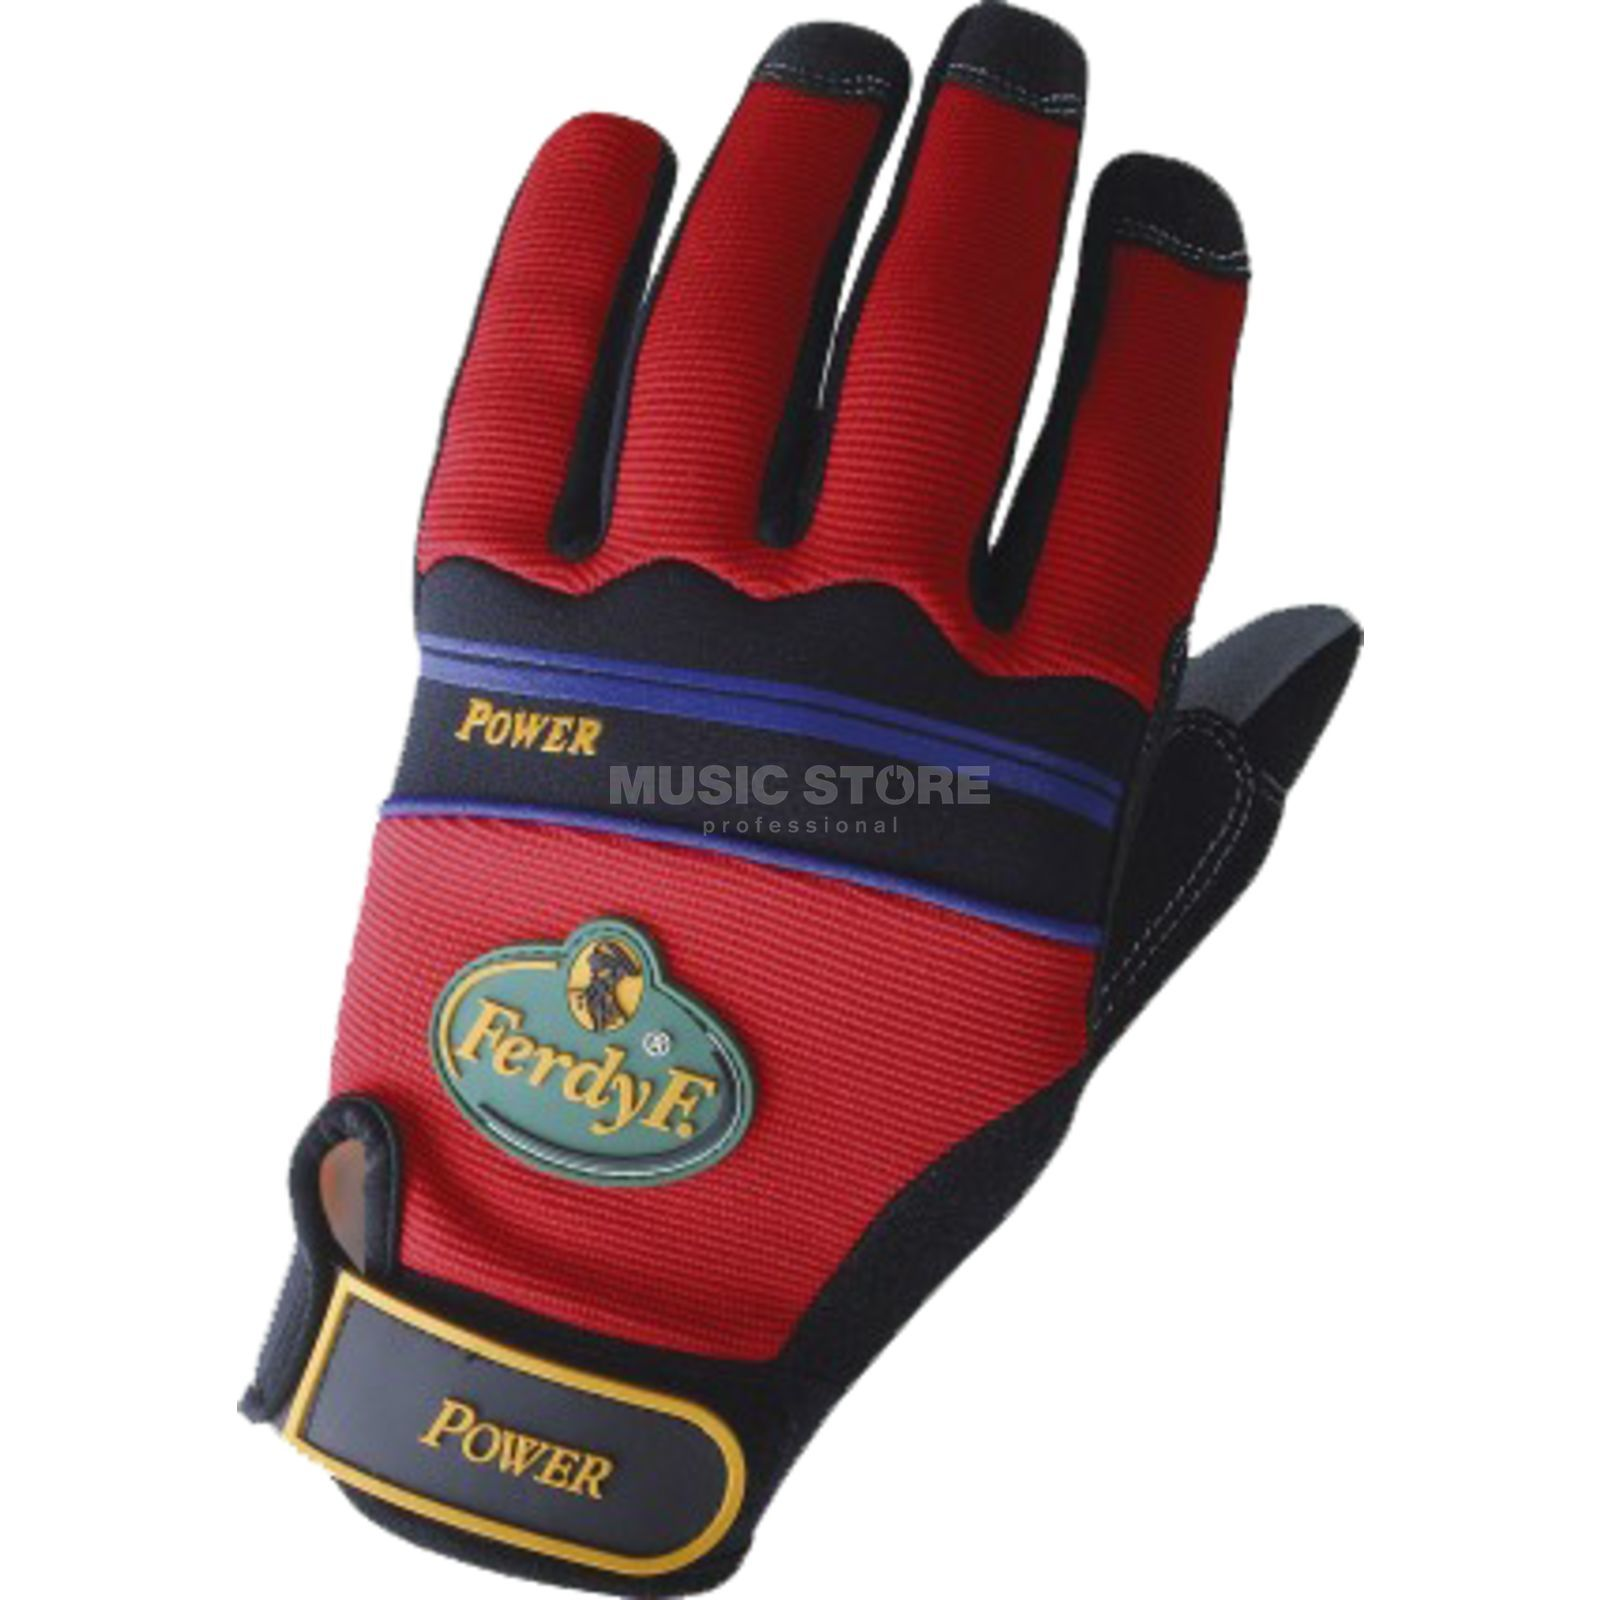 FerdyF. Power Gloves Size XL, red Produktbillede